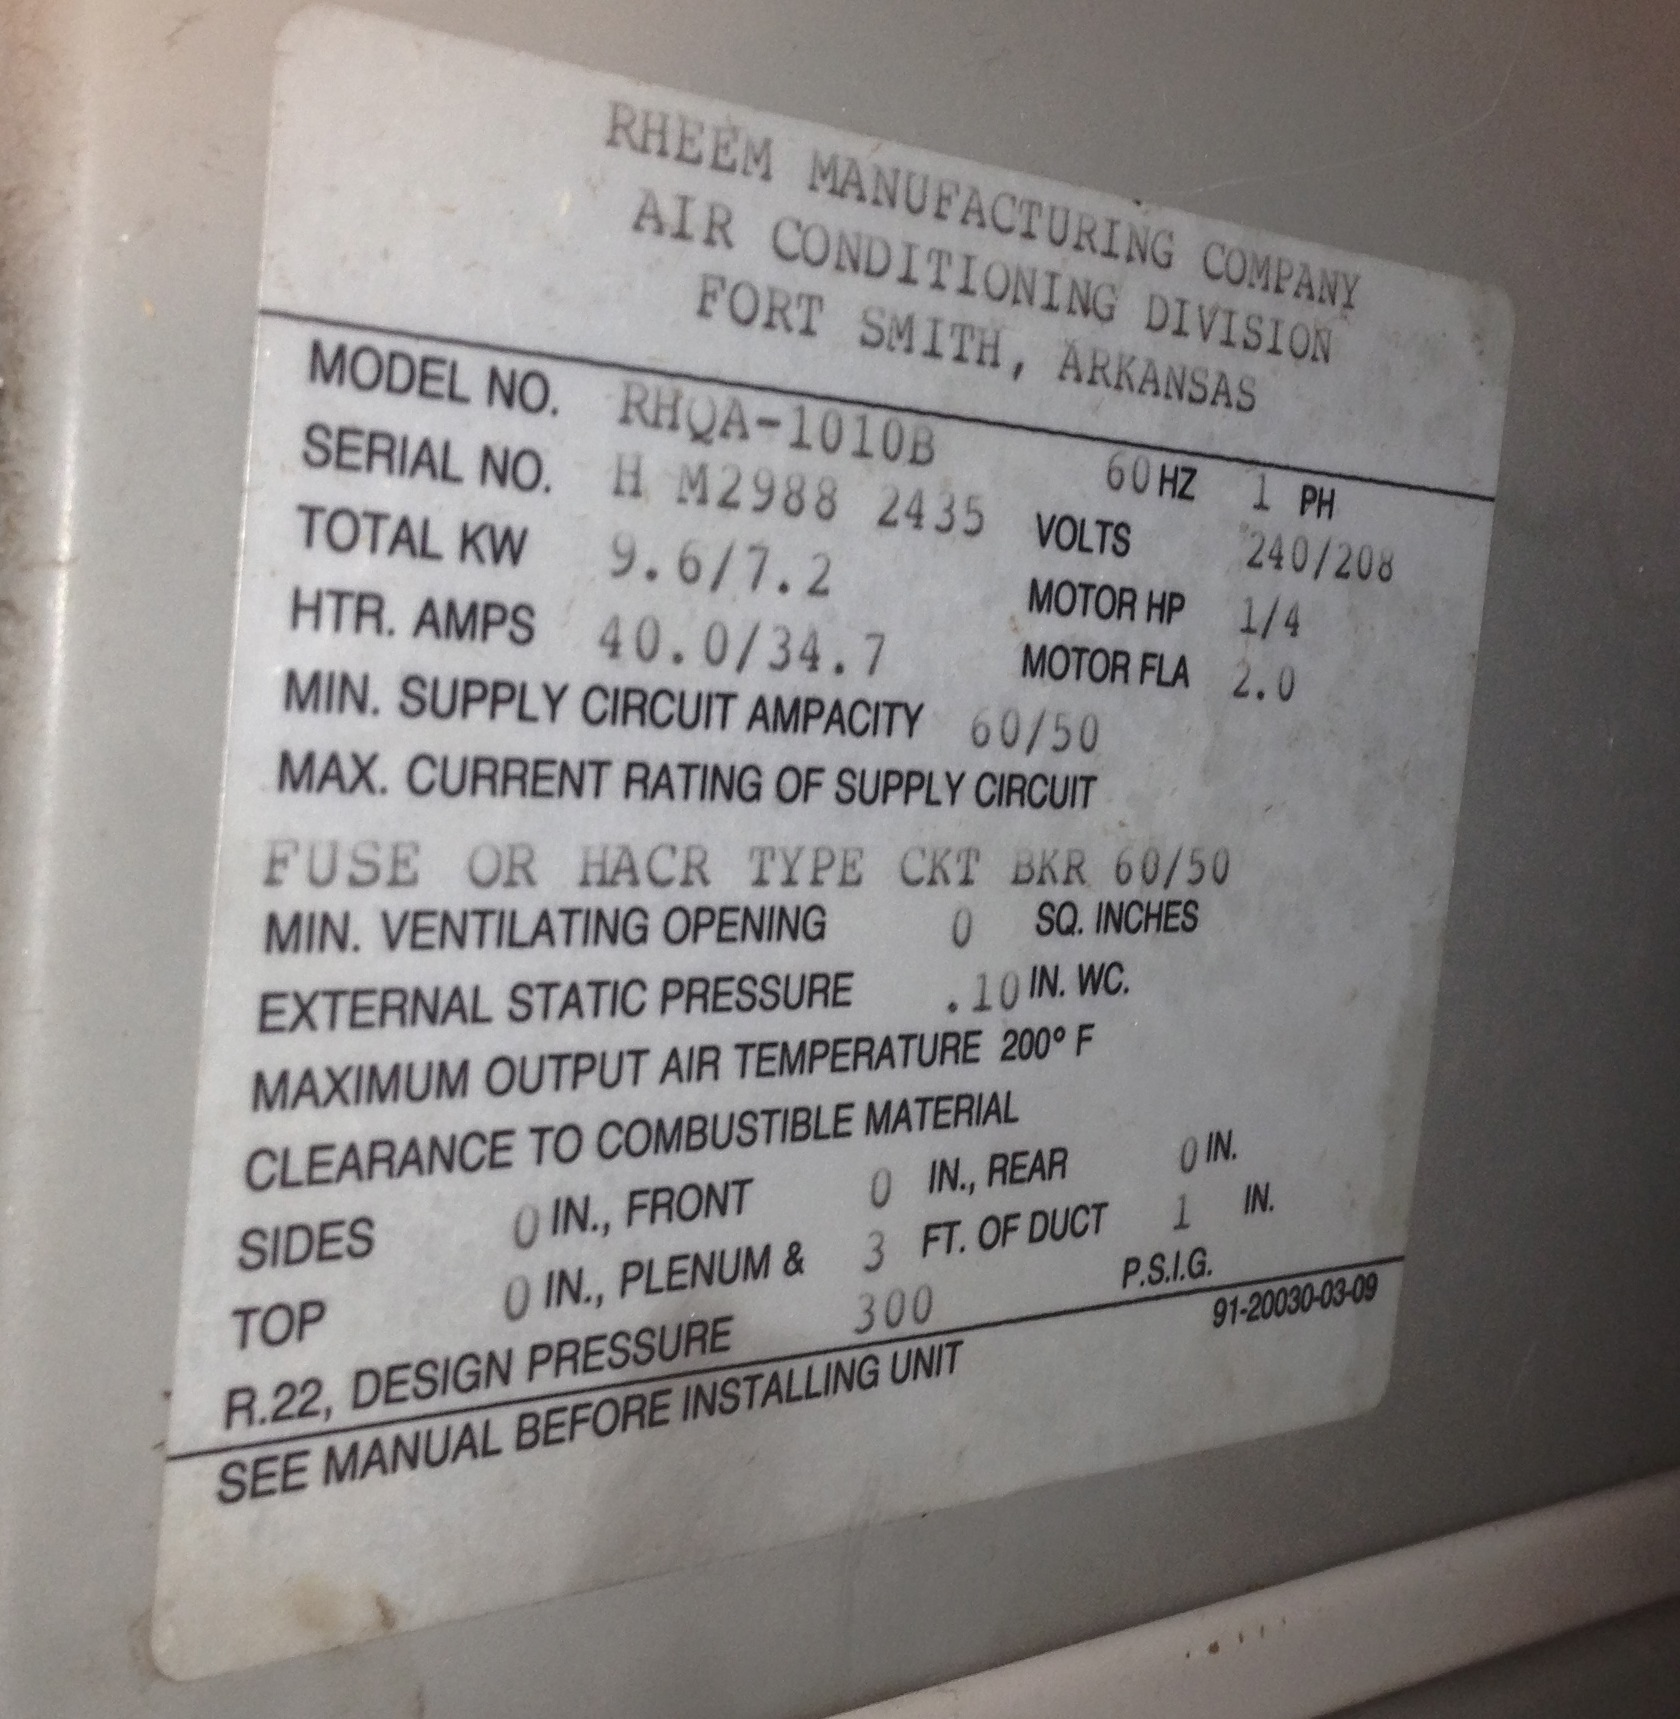 My Rheem Air Handler That Has Heat Pump With Auxiliary Has